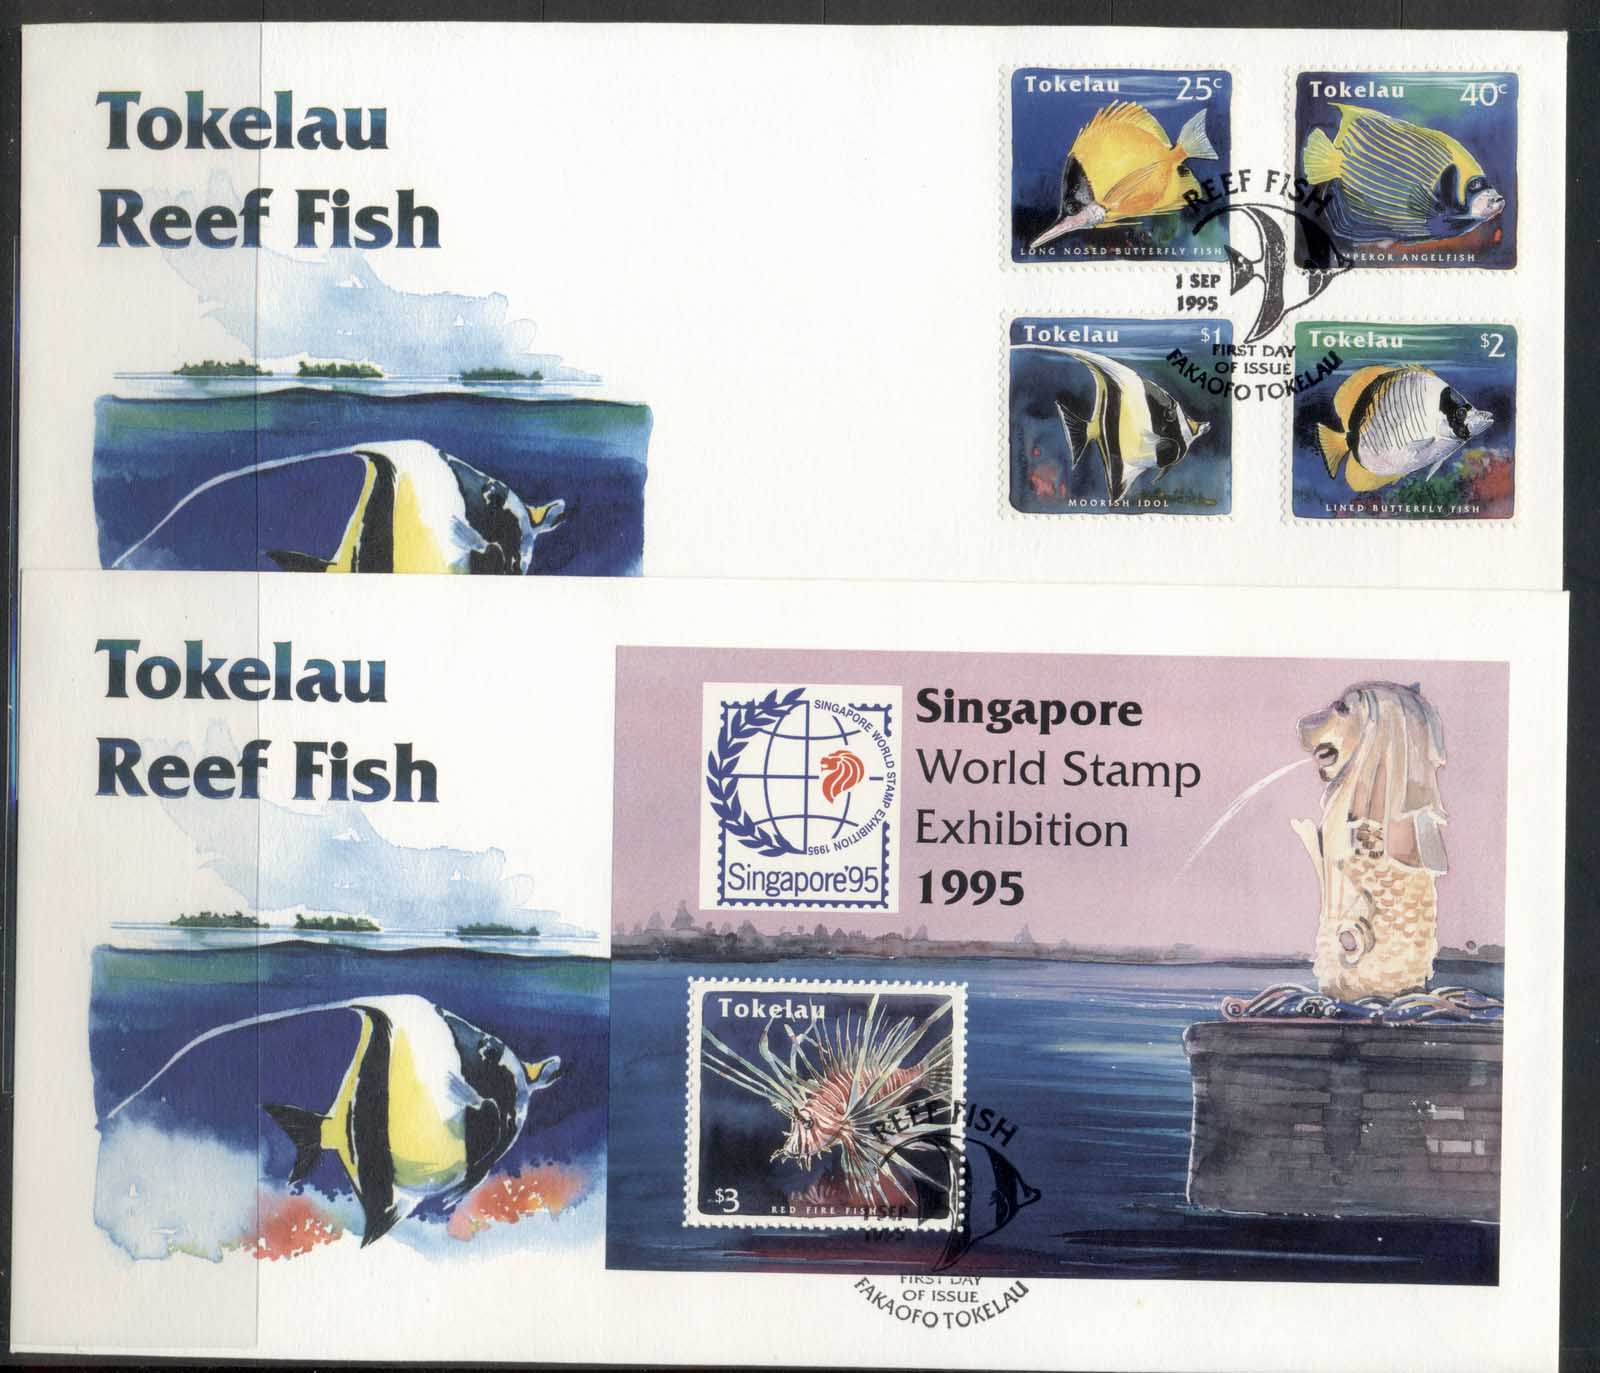 Tokelau 1995 Reef Fish 2x FDC